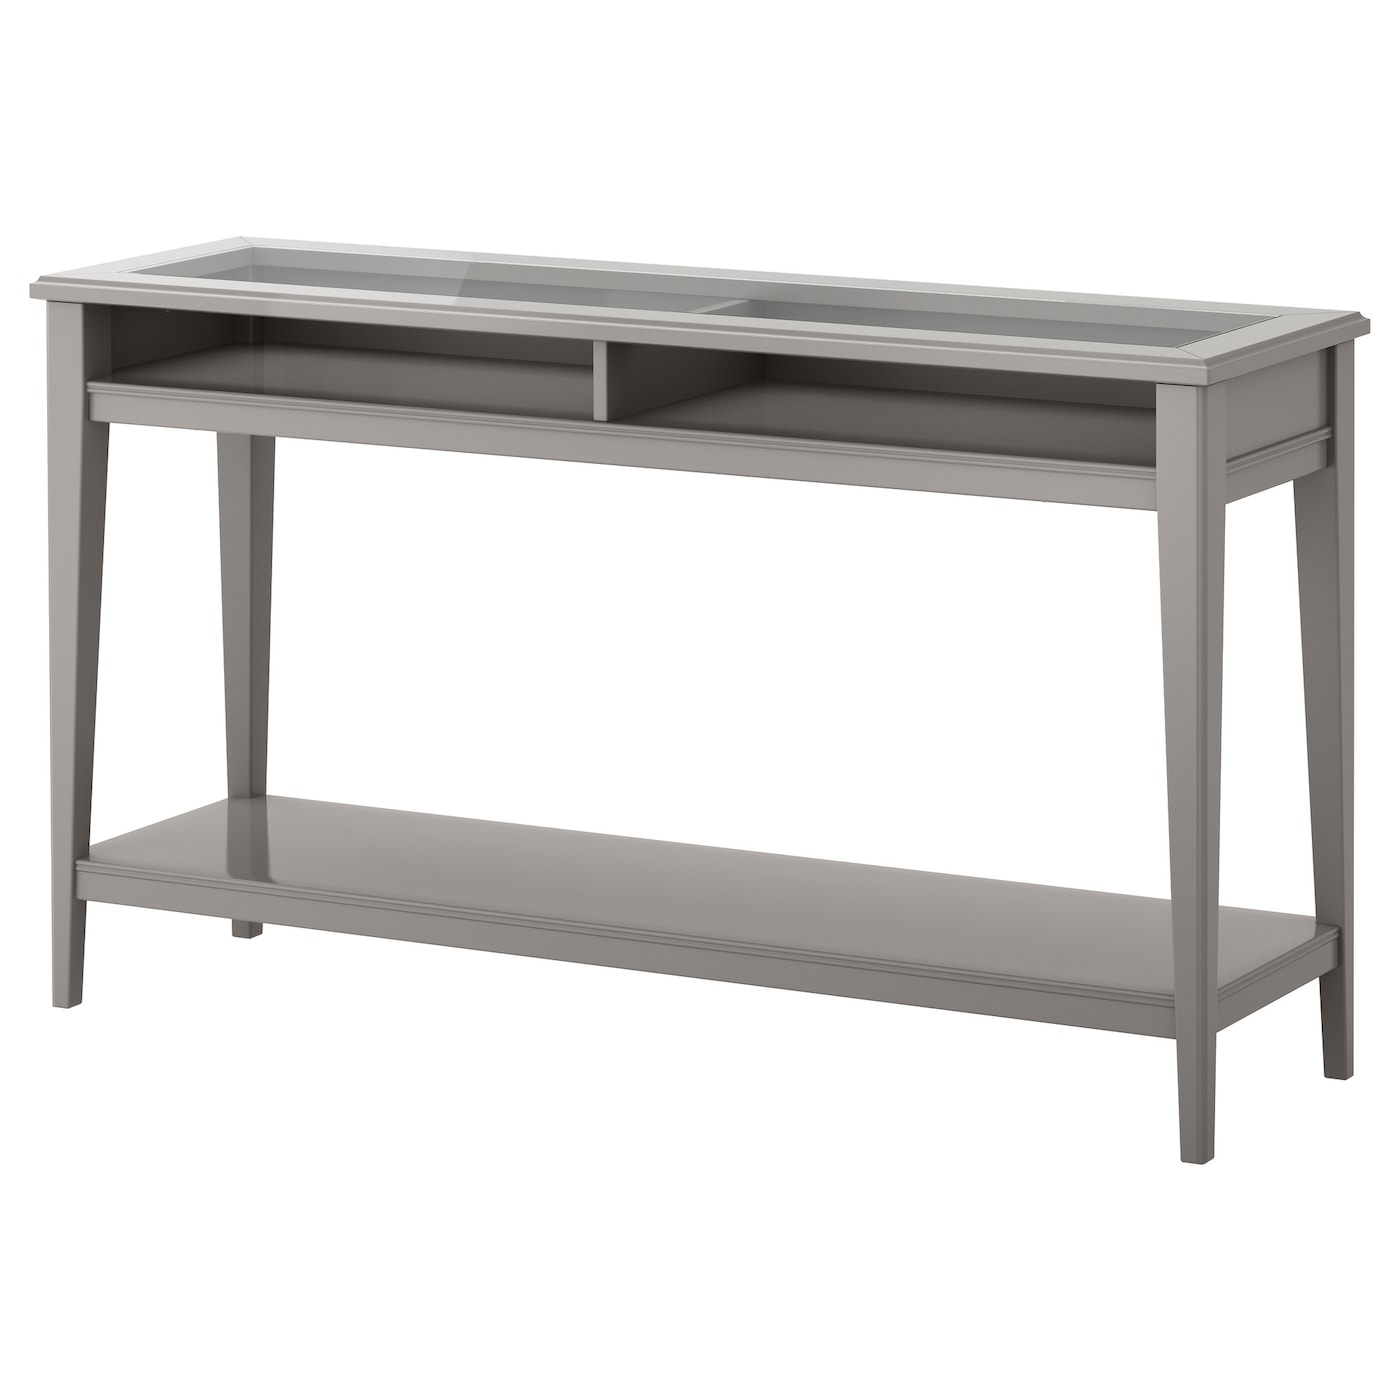 Liatorp console table grey glass 133x37 cm ikea for Console meuble ikea